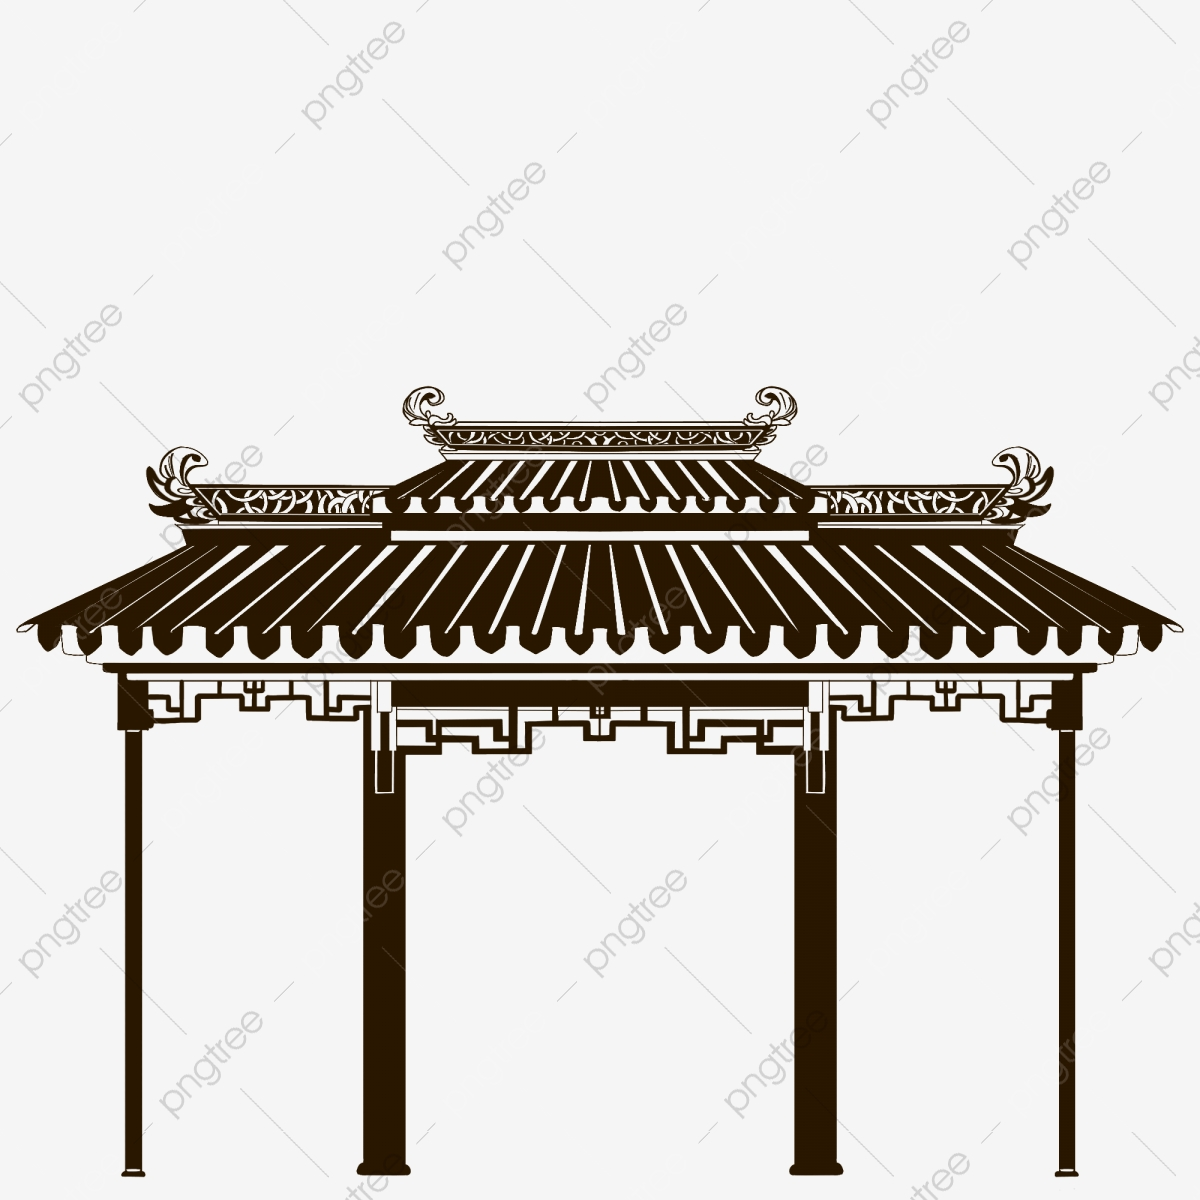 Chinese Pavilion Image Vector Graphics - Architecture Transparent PNG